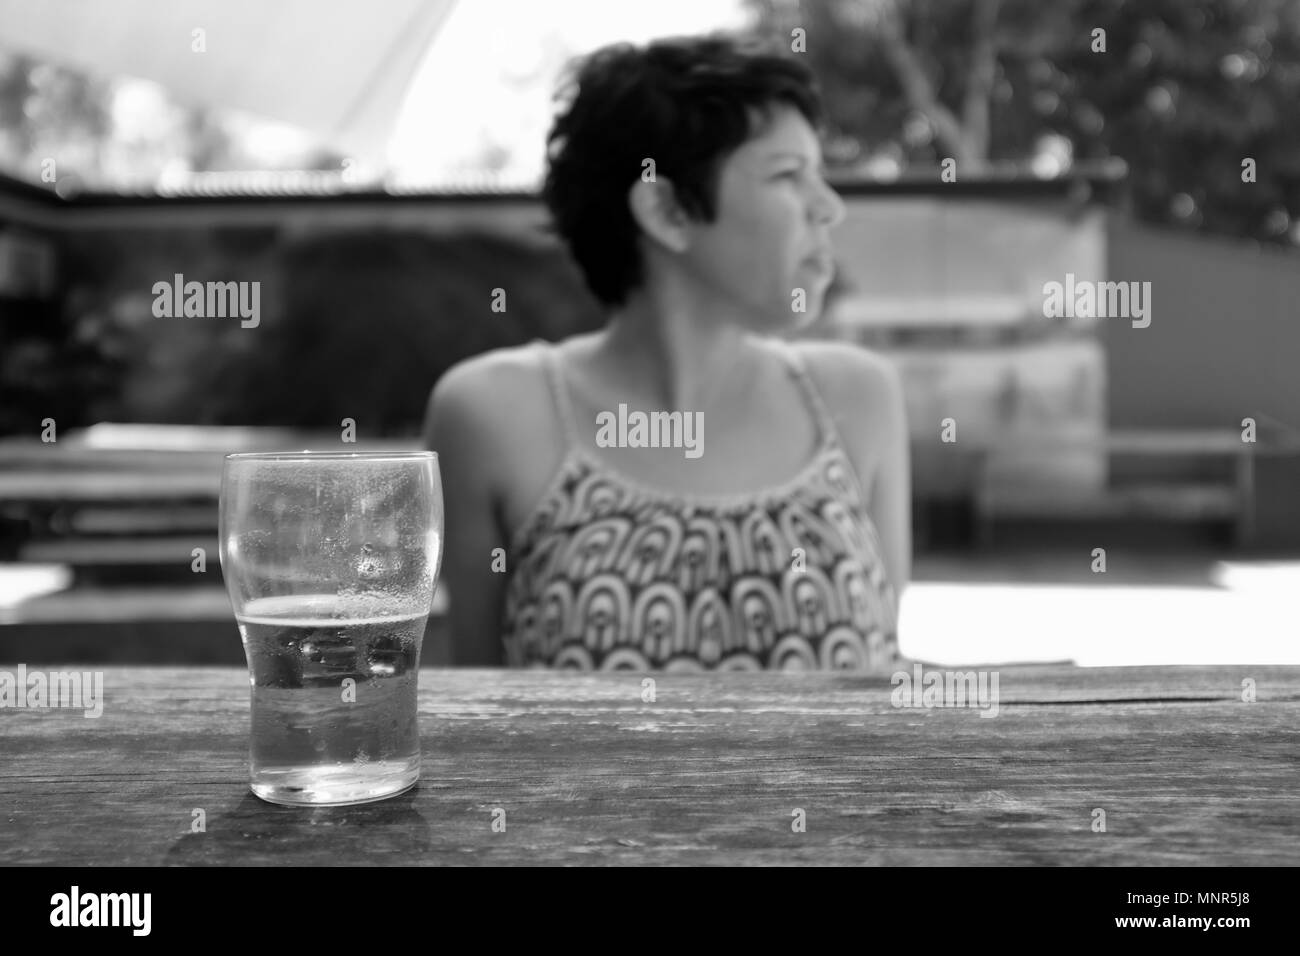 Woman having a glass of beer, Rollingstone Hotel, Bruce Hwy, Rollingstone QLD 4816, Australia - Stock Image